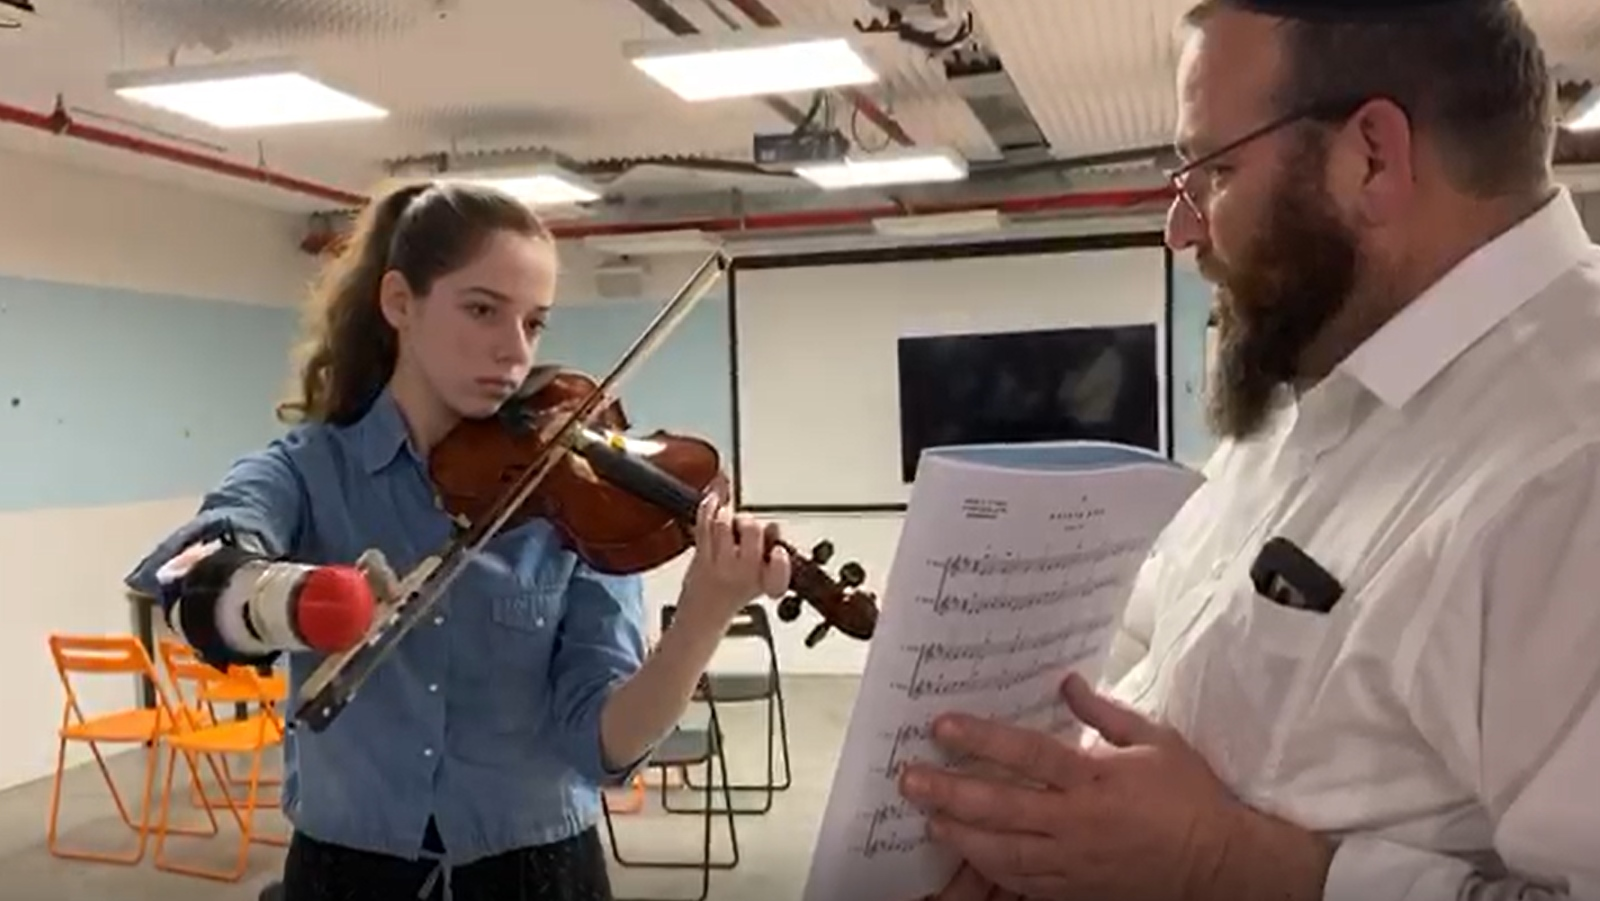 Israeli engineering students design a low-cost prosthesis to fulfill a 16-year-old girl's dream to play the violin.